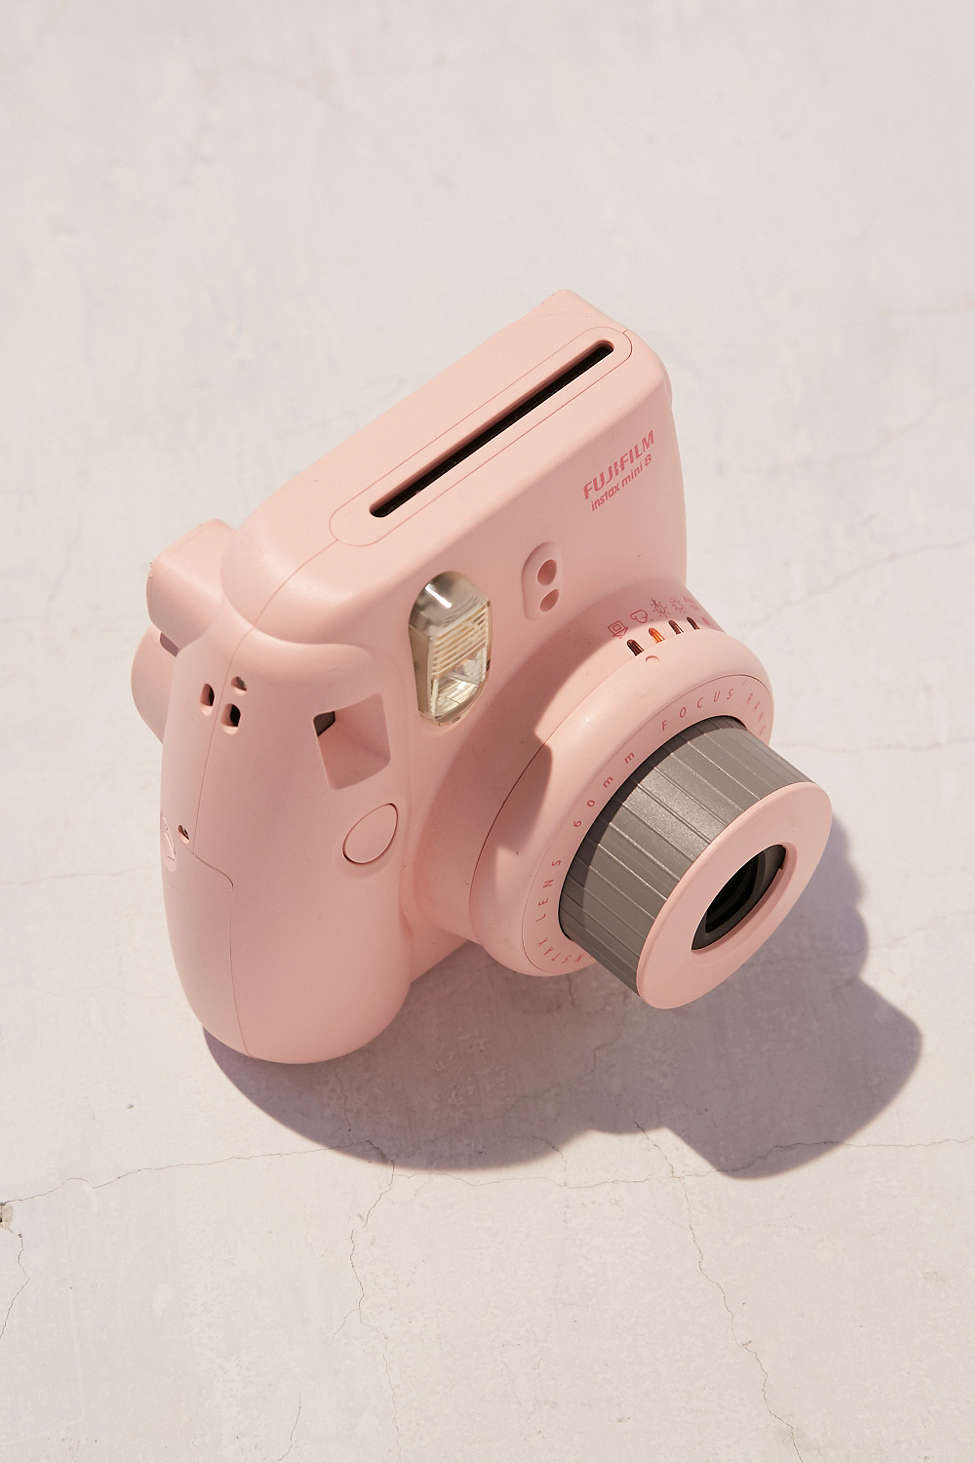 INSTAX MINI 8 INSTANT CAMERA by FUJIFILM